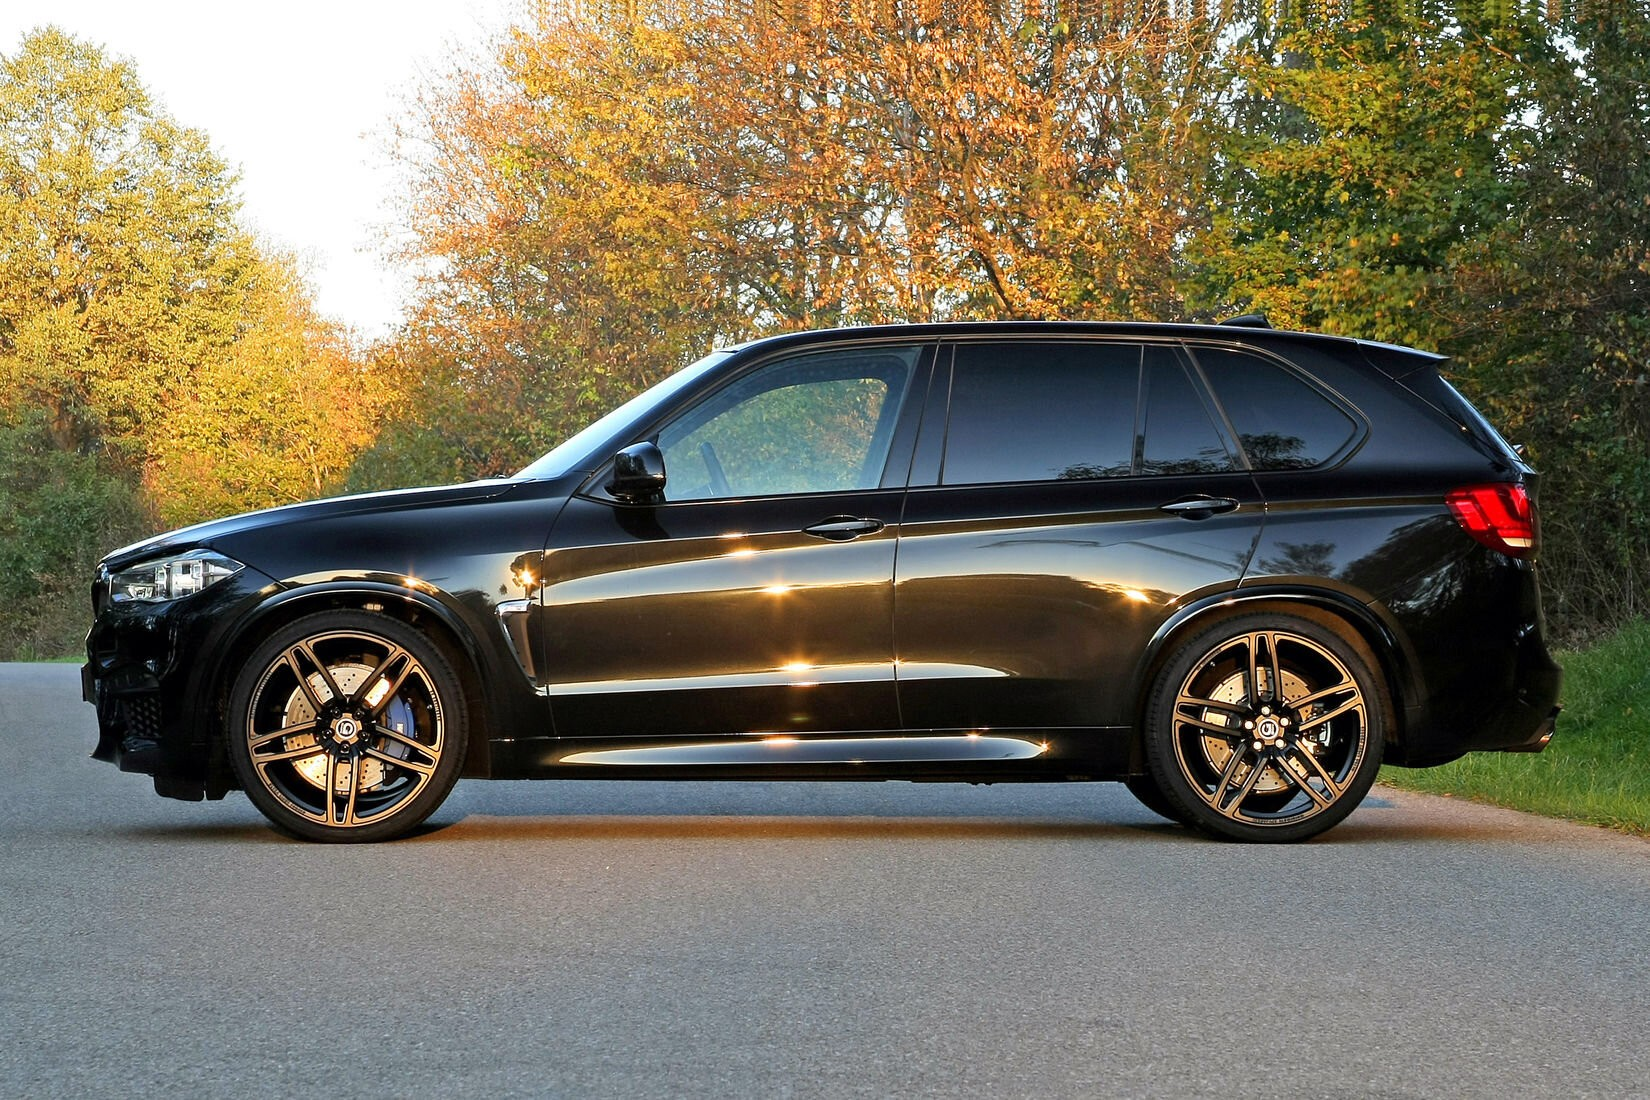 background - Monster-BMW X5: v úpravě od G-Power má výkon 750 koní